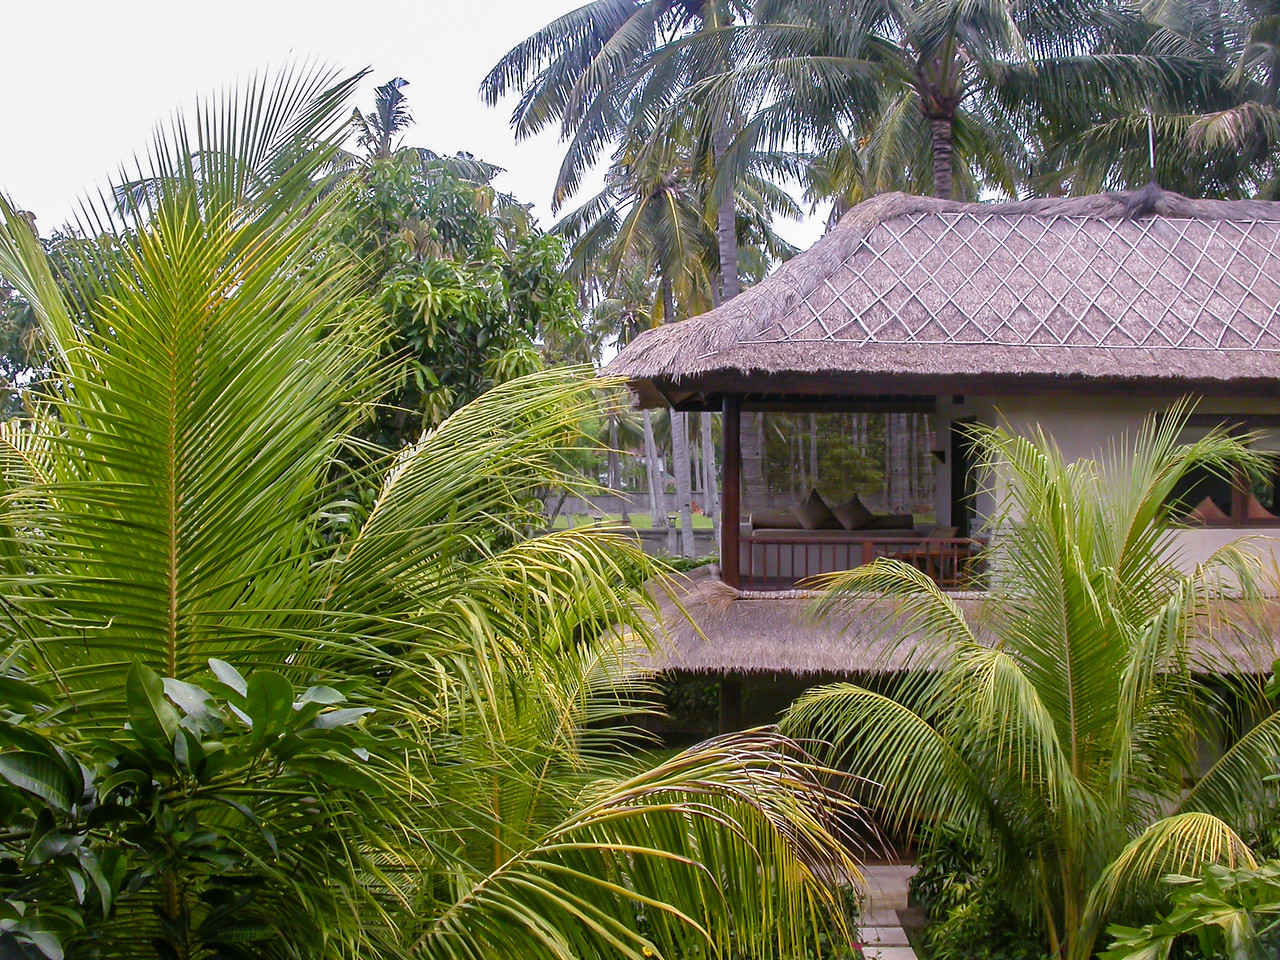 Quinci Villas, Lombok, Indonesia 2004